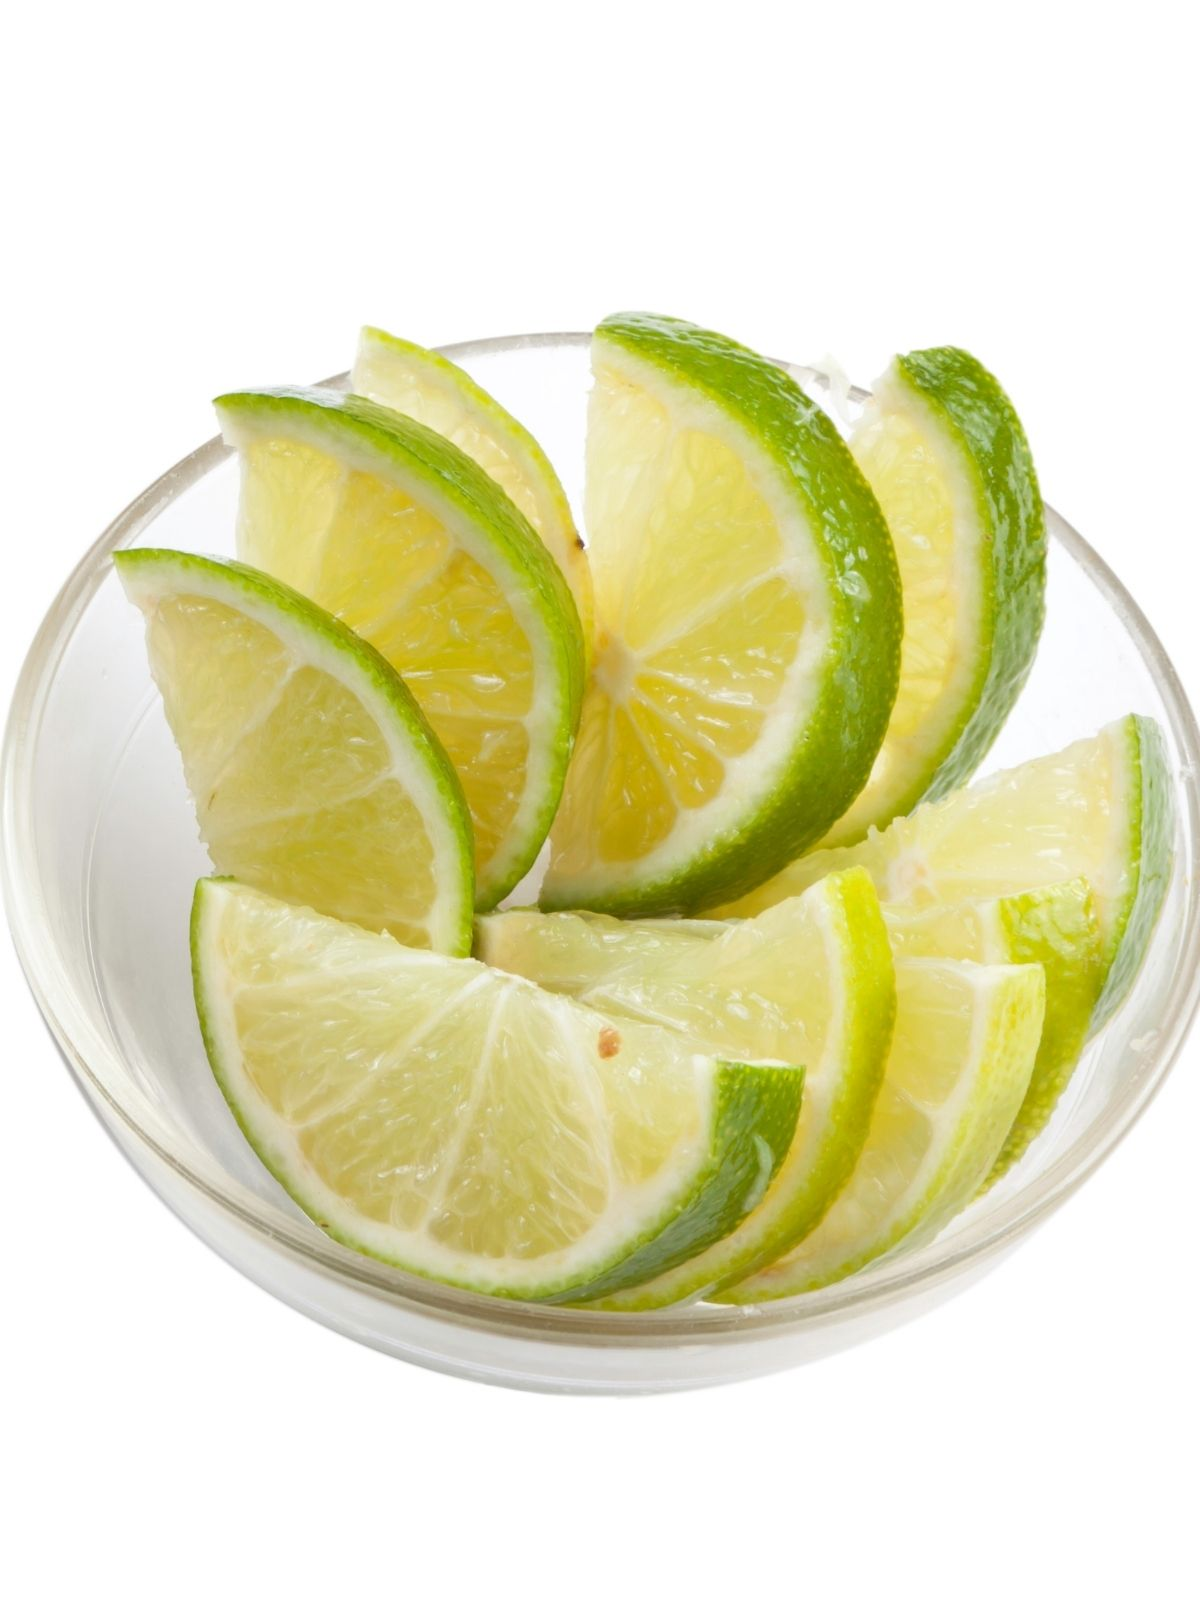 Lime slices in bowl.